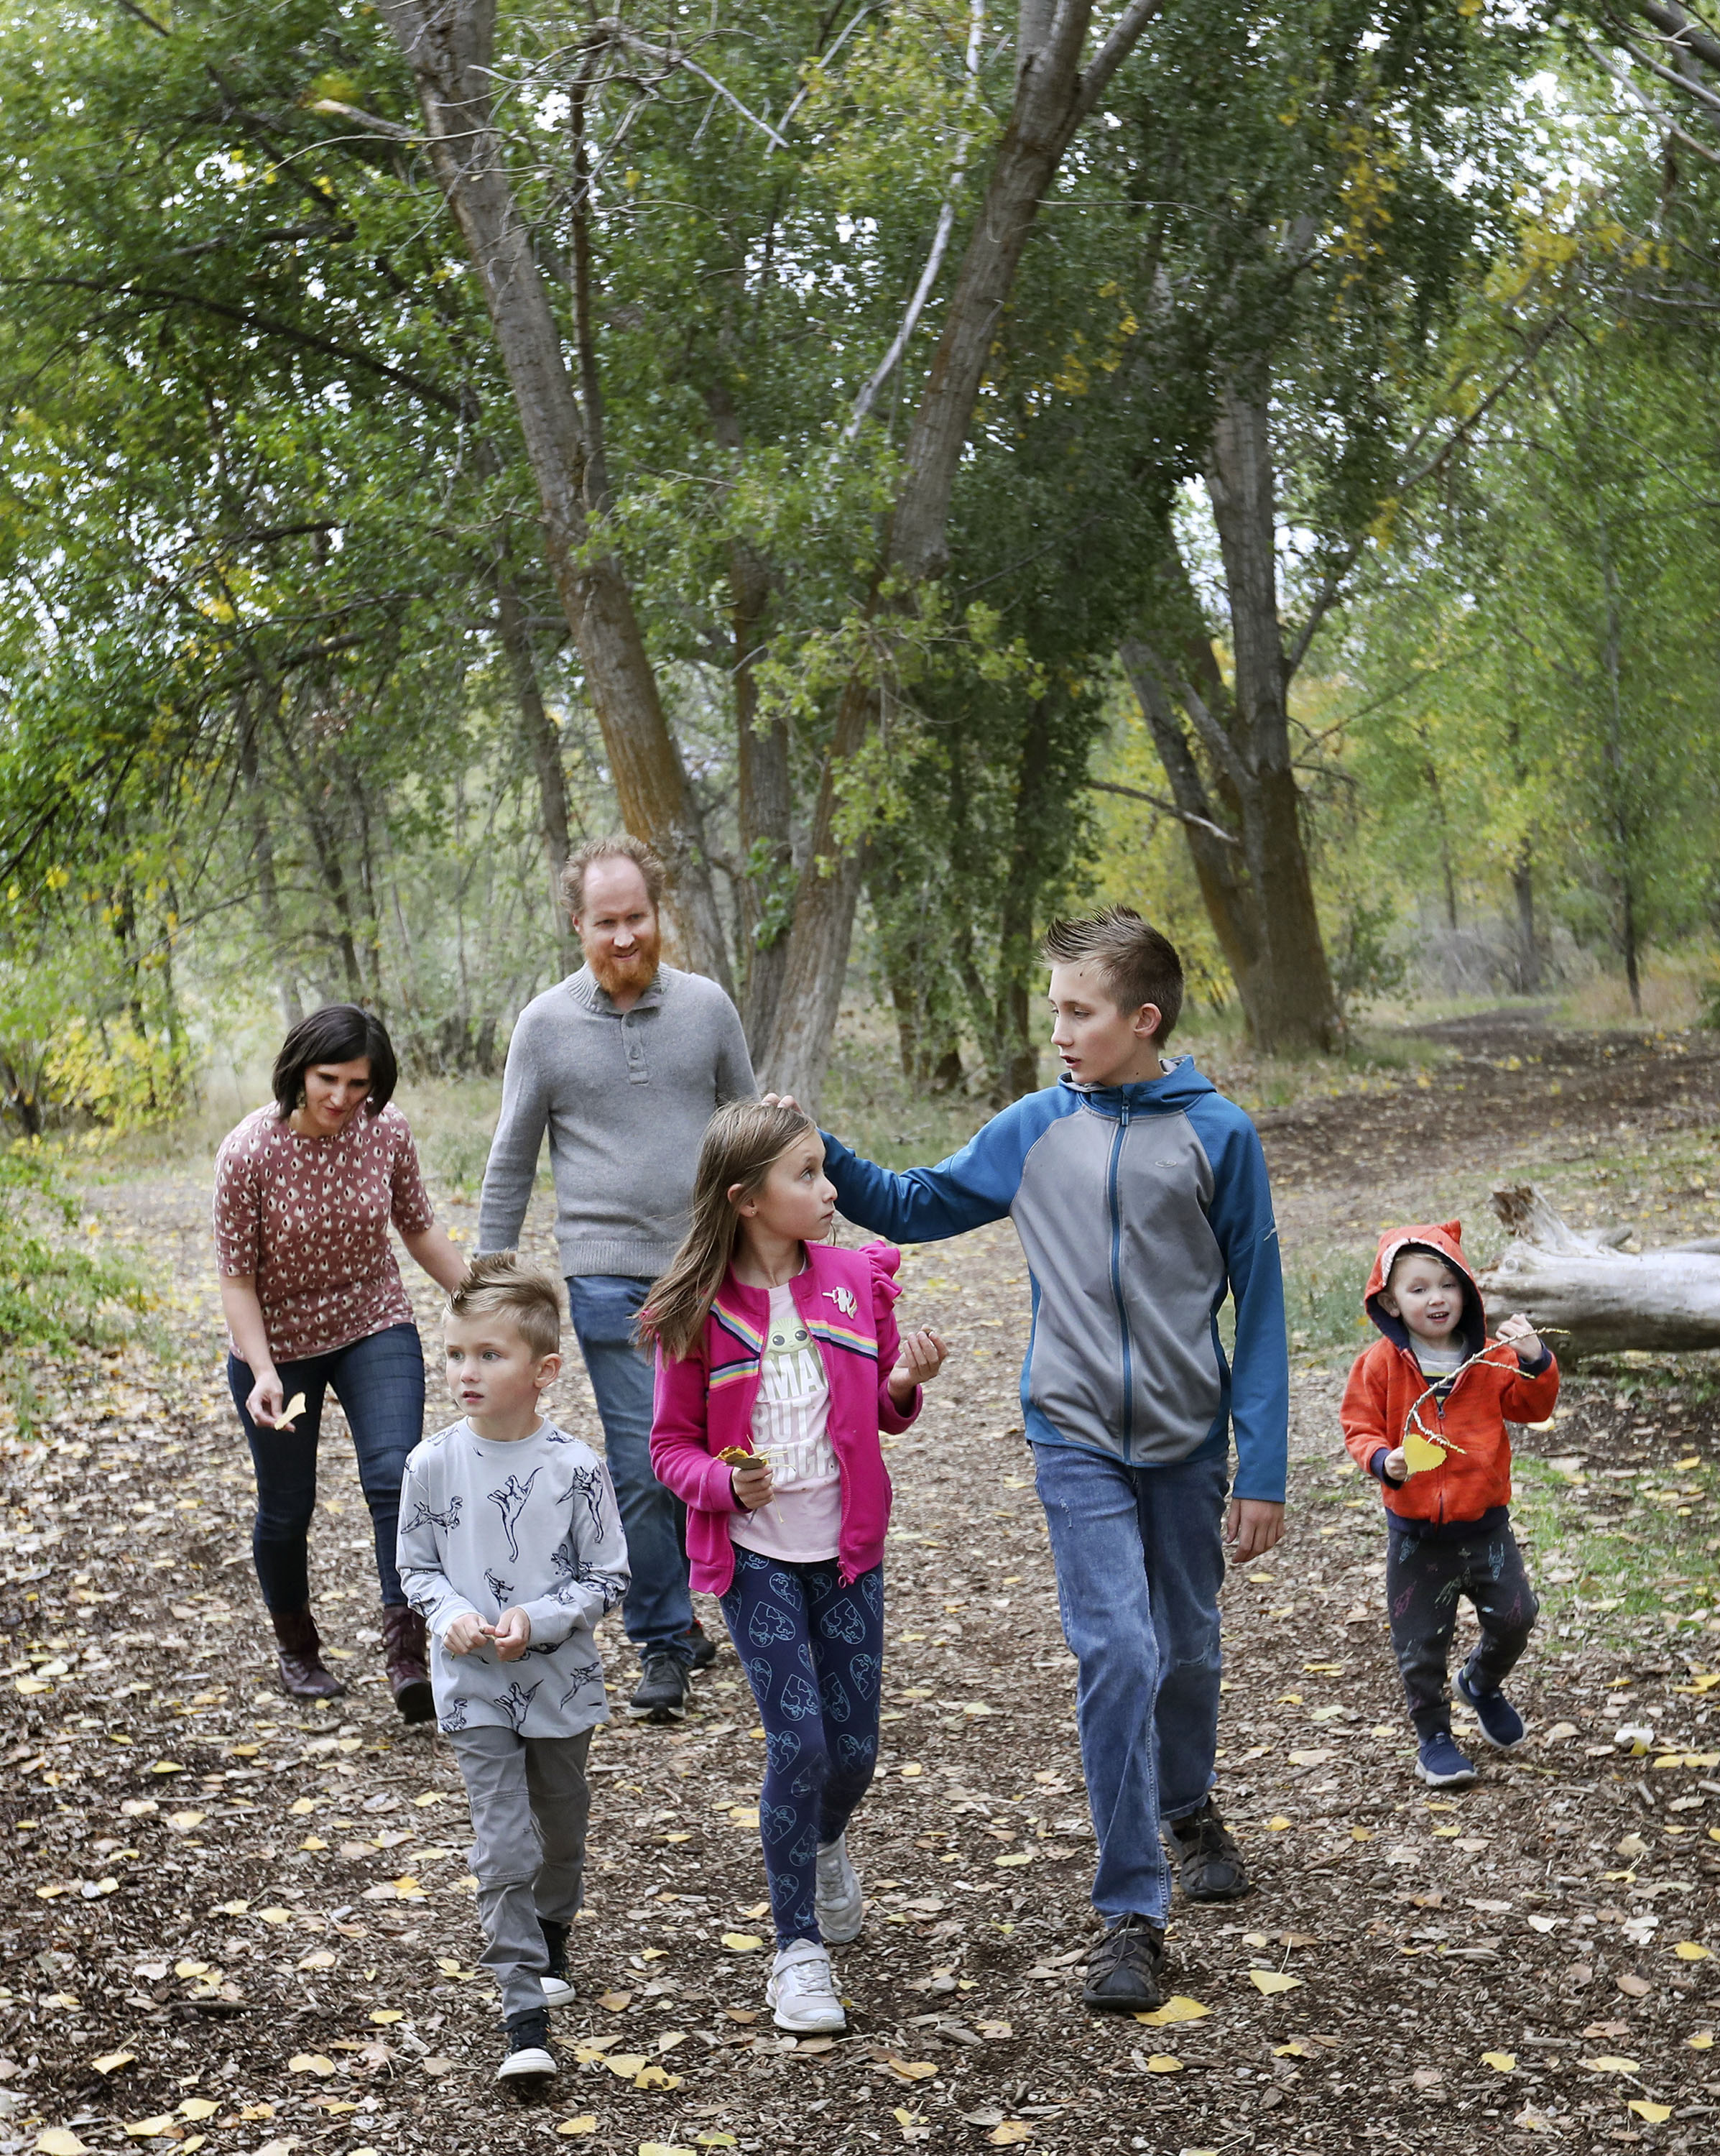 Melanie and Sam Jewkes walk with their children, left to right, Nico, Sapphire, Winston and Flint, near their home in Murray on Friday, Oct. 8, 2021.